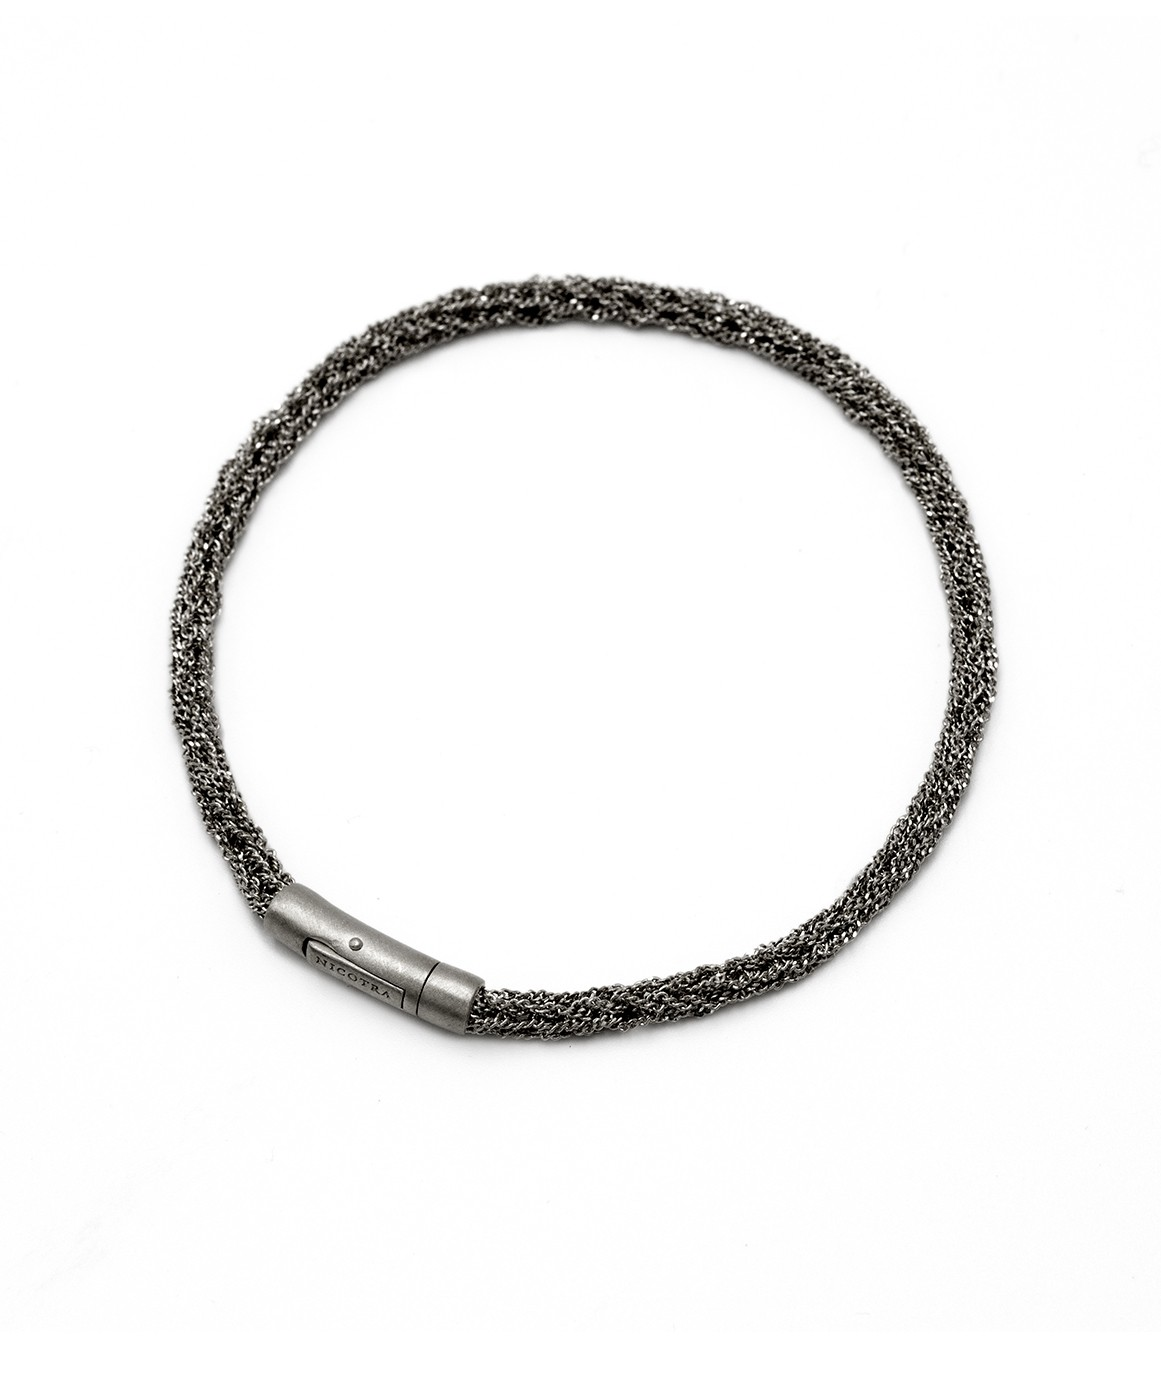 MILLESIMATO DOC Bracelet in Sterling Silver Ruthenium plated